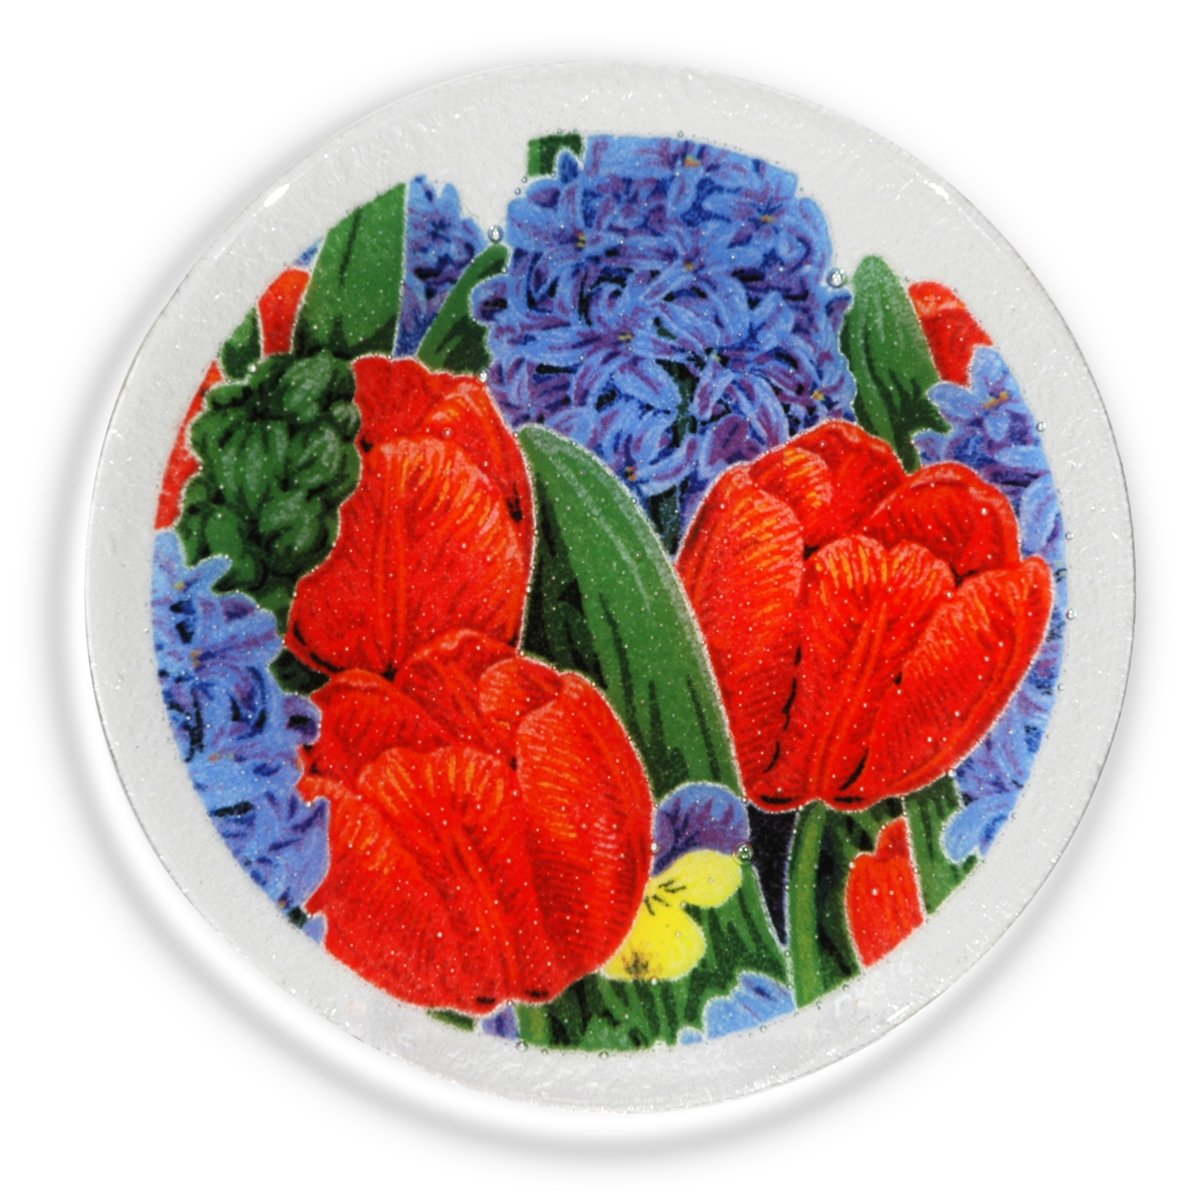 Peggy Karr Glass Handcrafted Art Glass Spring Garden 08'' Round Plate, Multicolor Floral Design